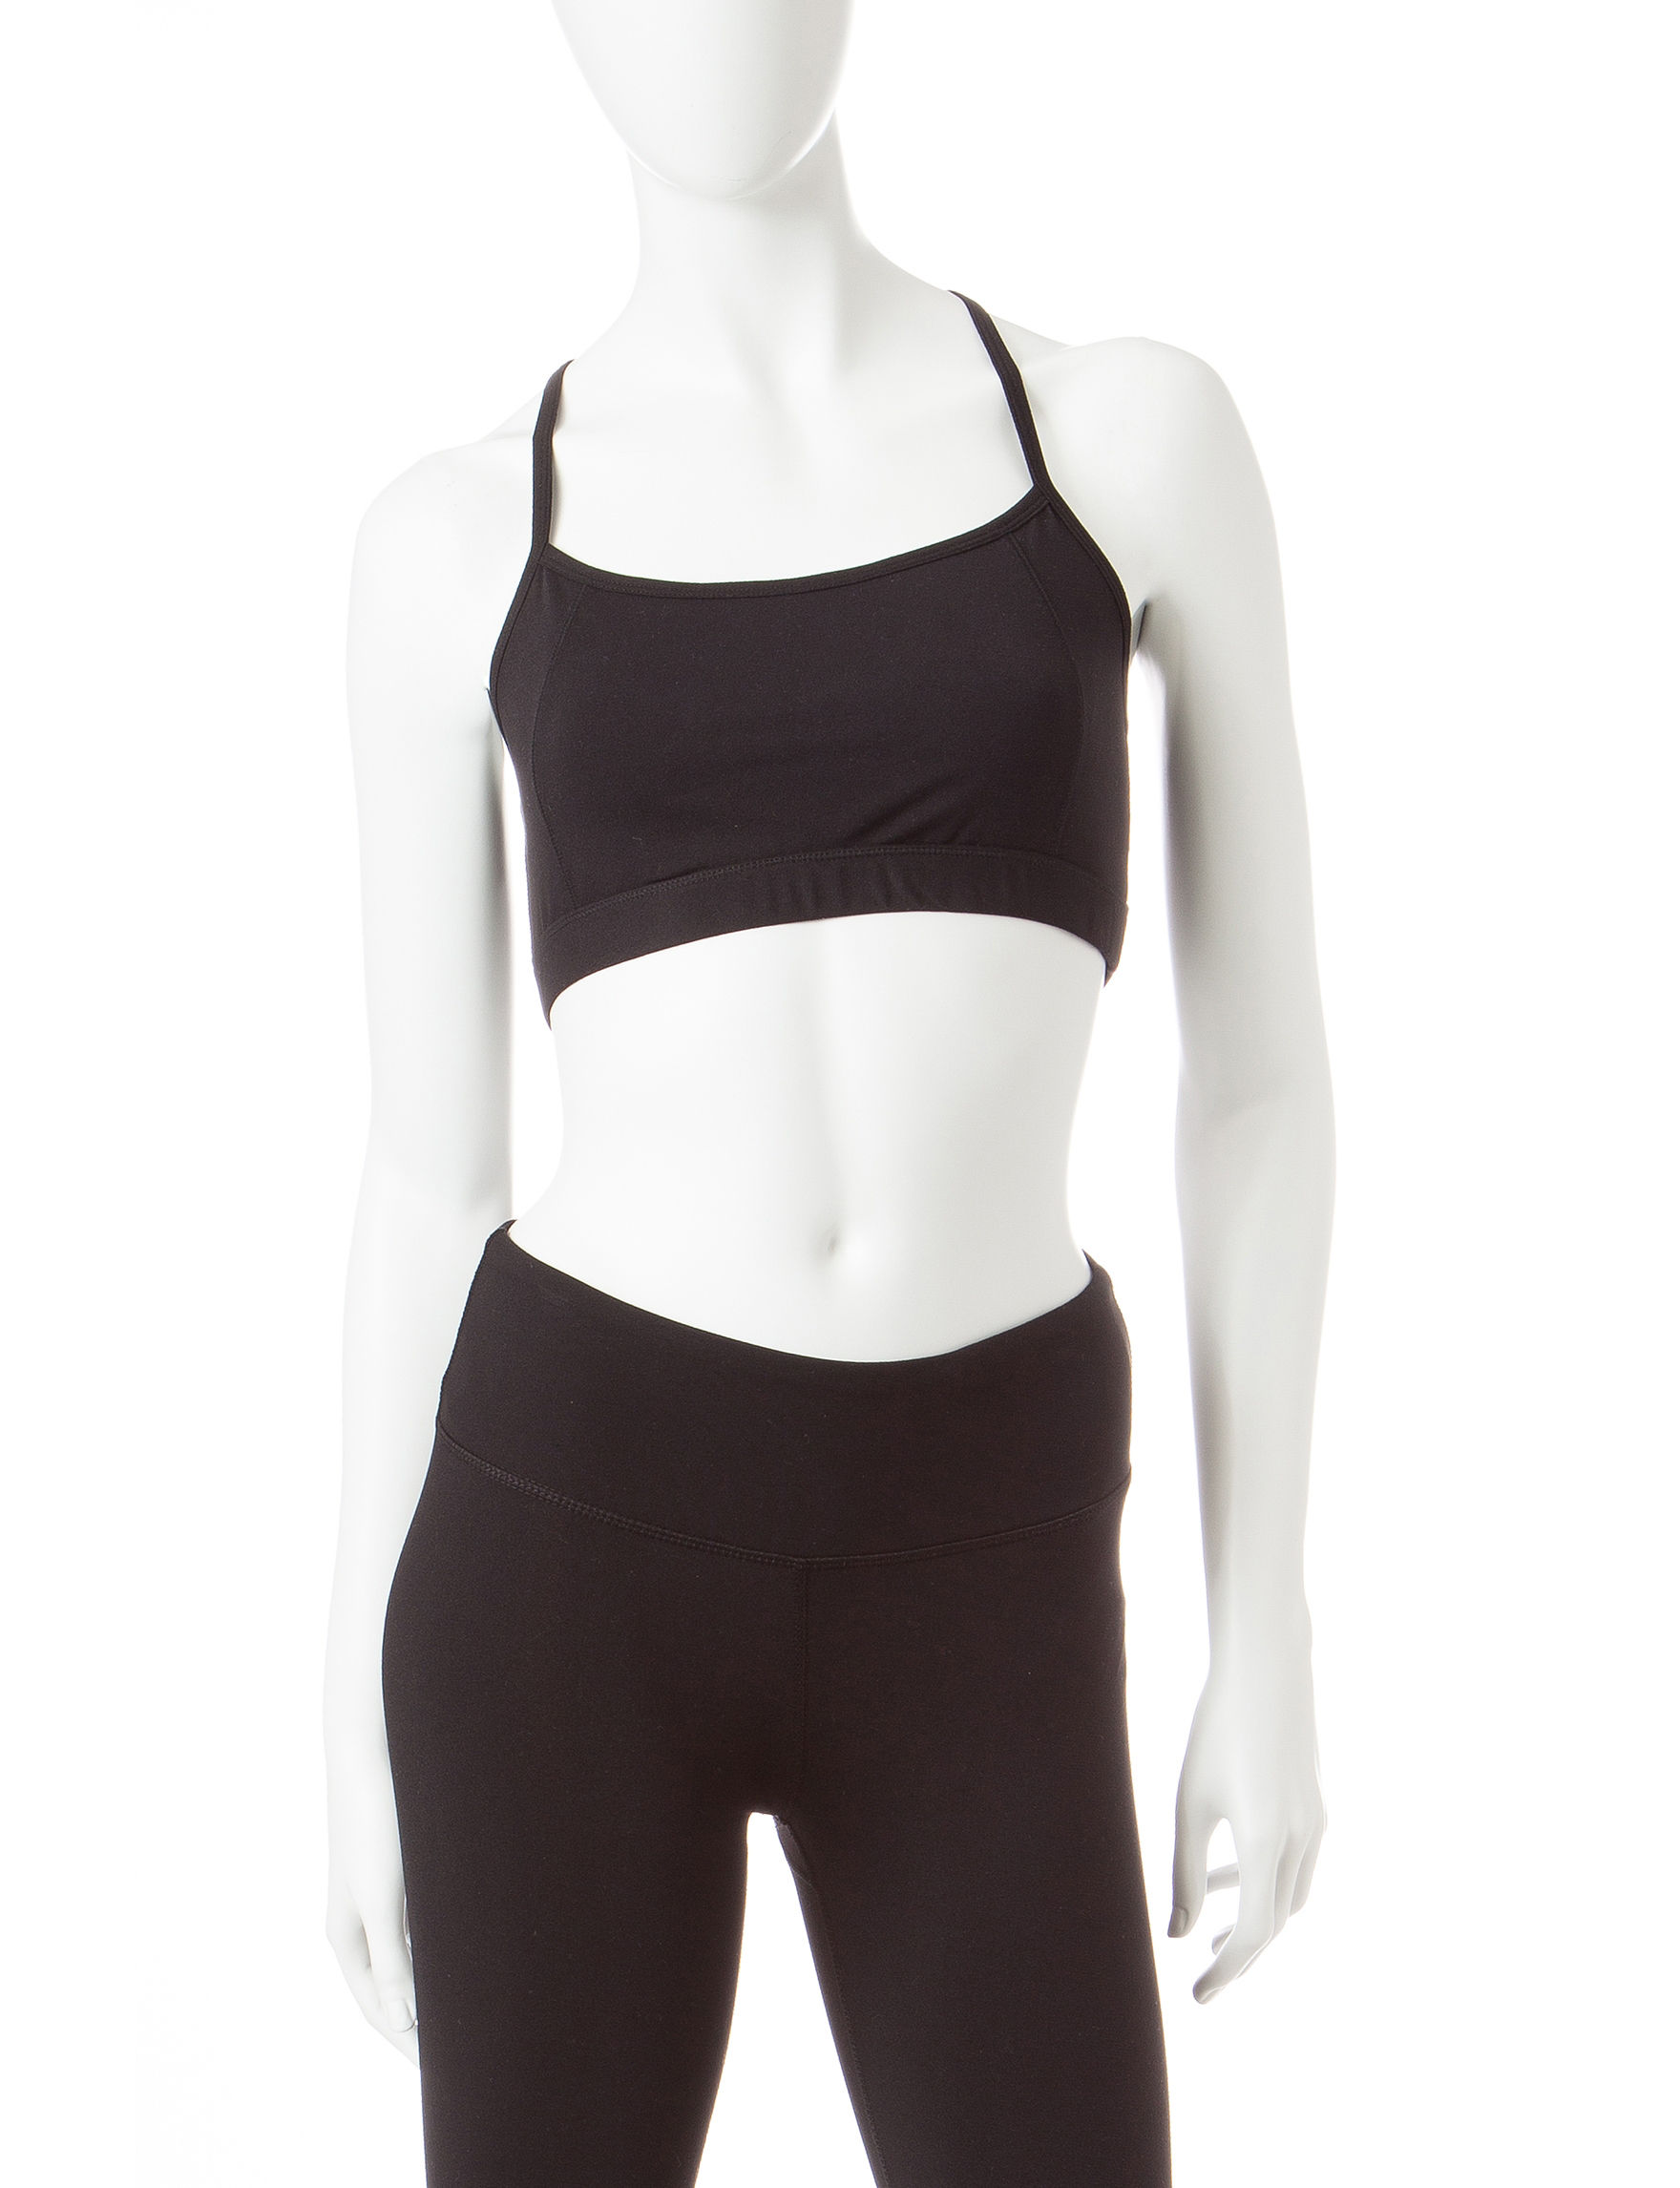 Steve Madden Black Bras Sports Bra